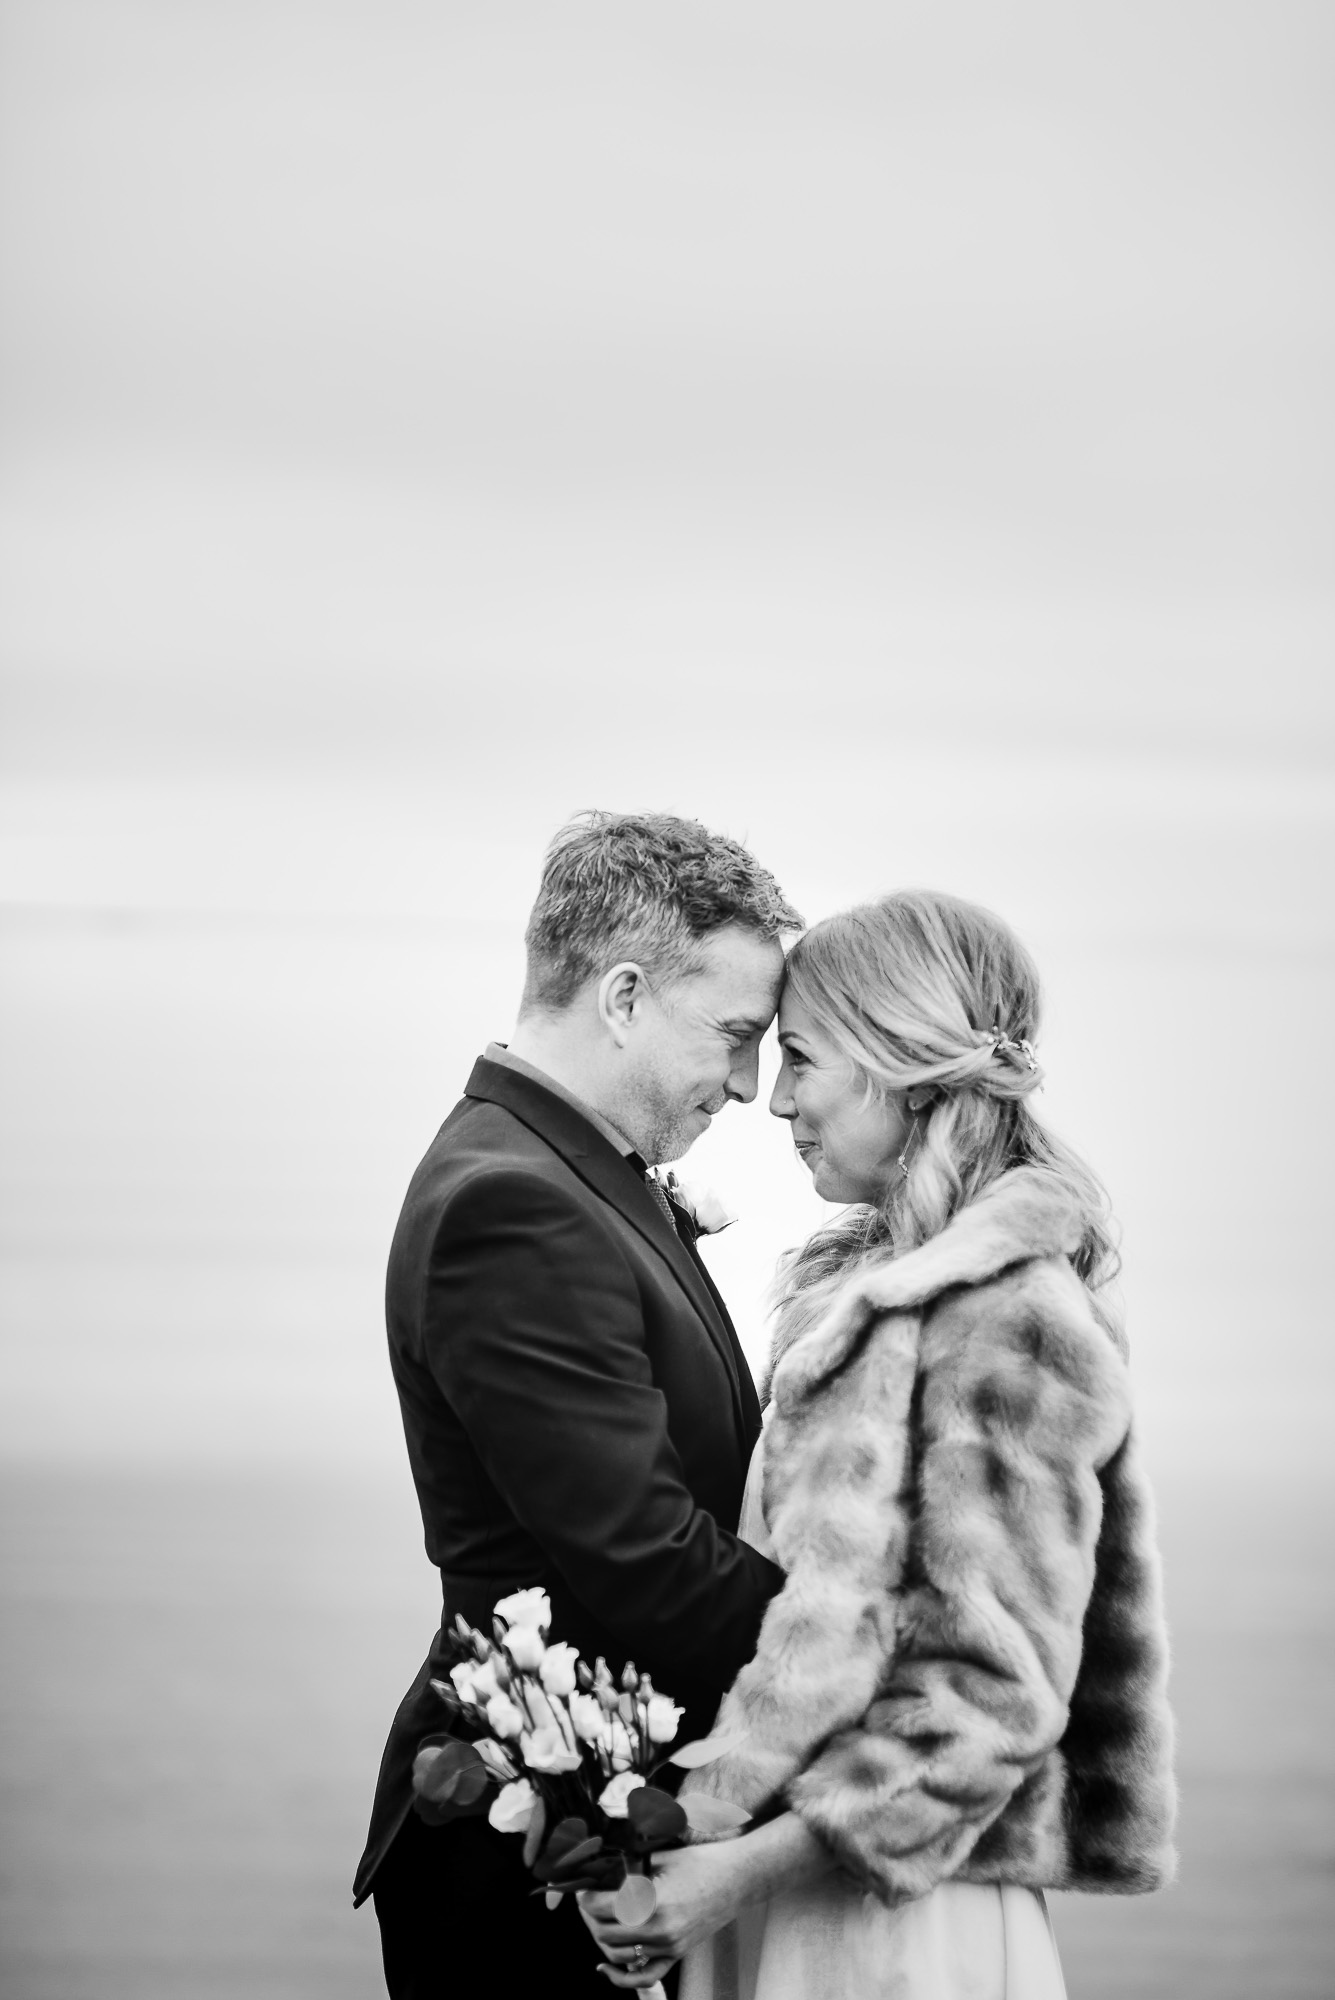 Bride and Groom | Wedding Photographer | Swansea | South Wales